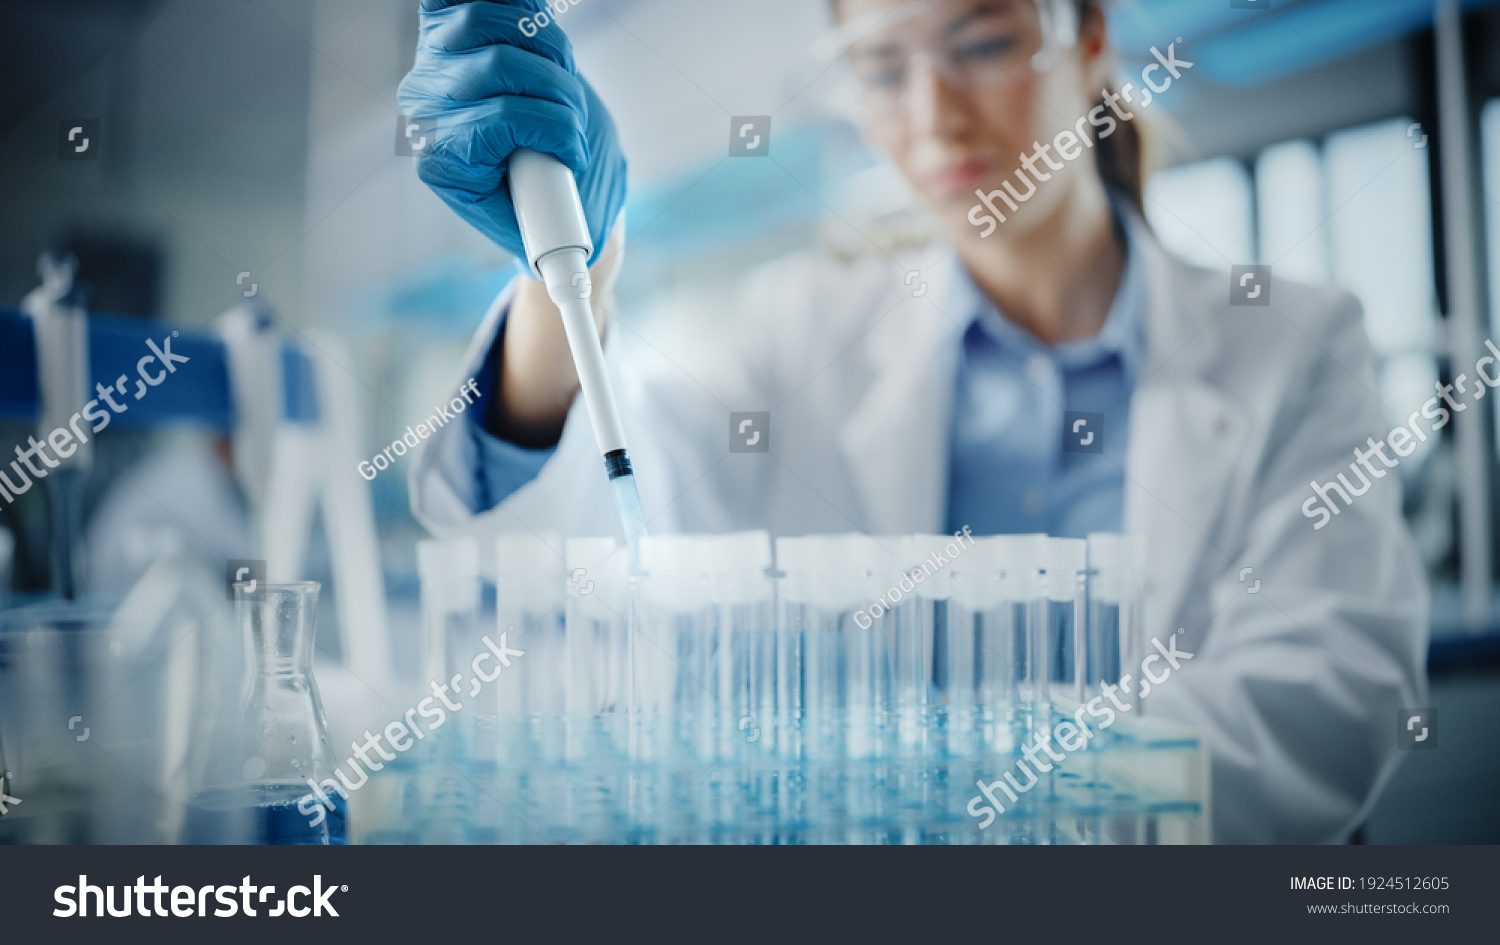 Medical Research Laboratory: Portrait of a Beautiful Female Scientist in Goggles Using Micro Pipette for Test Analysis. Advanced Scientific Lab for Medicine, Biotechnology, Microbiology Development #1924512605